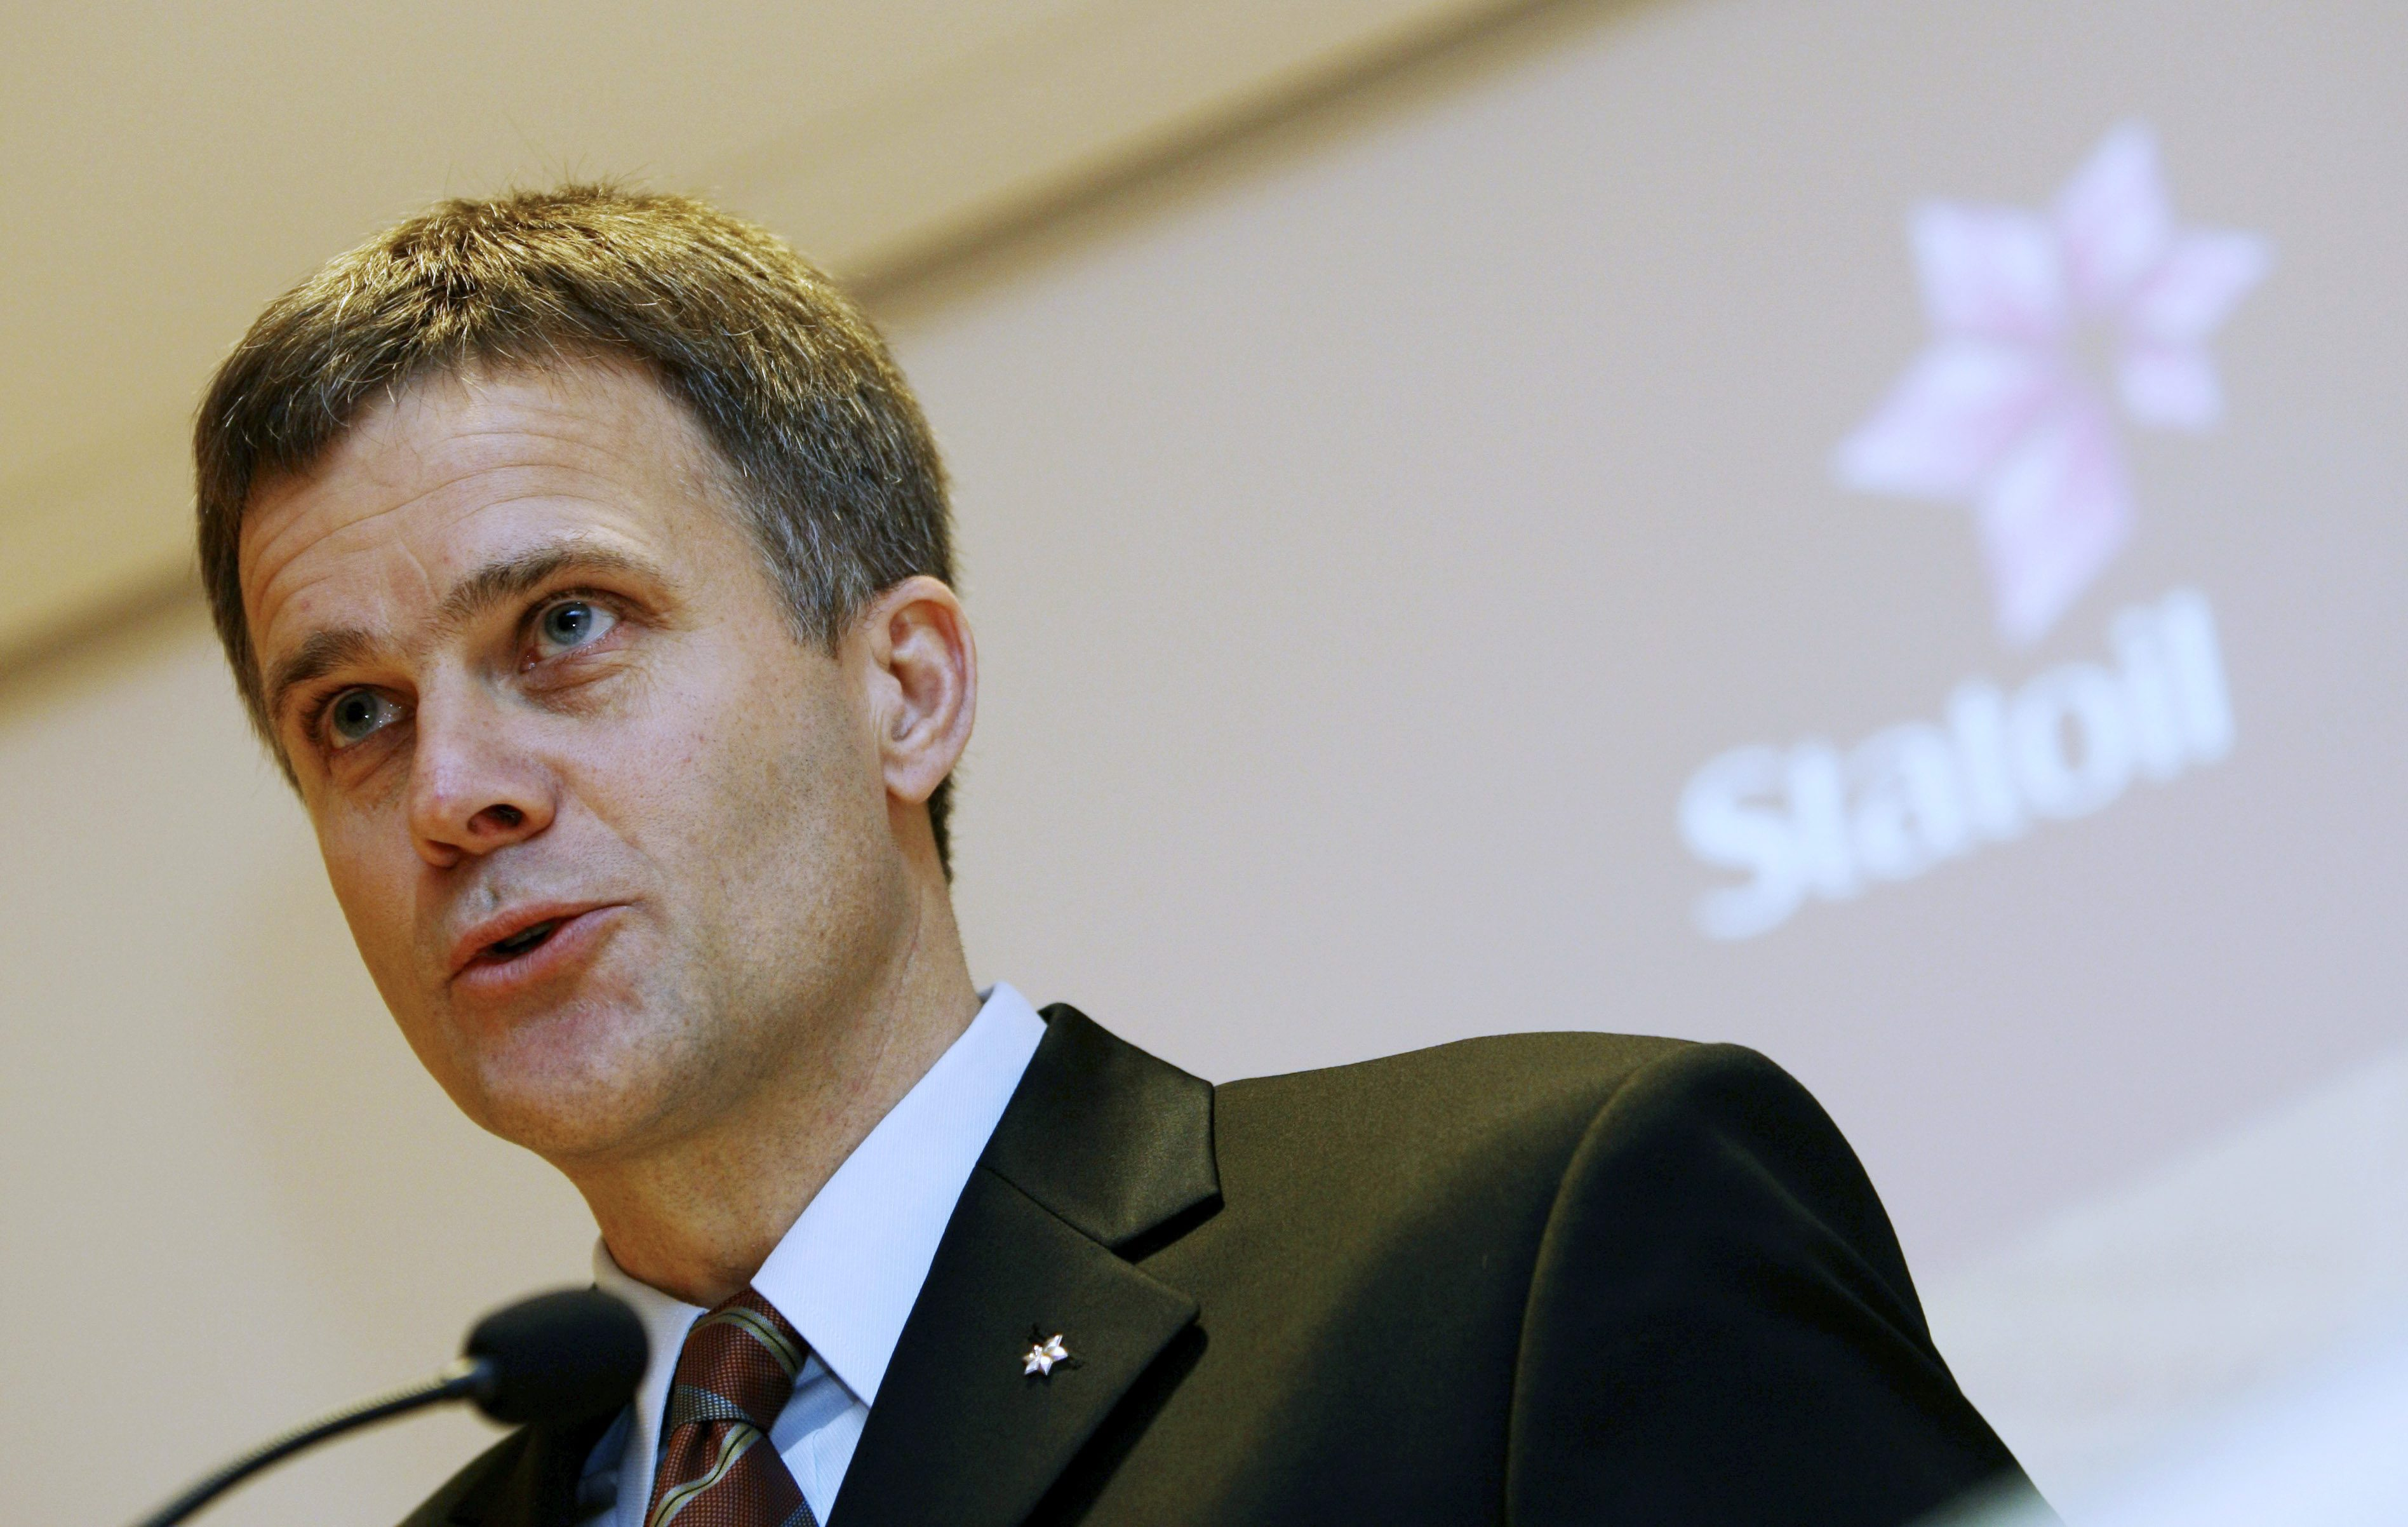 CEO of state-controlled Statoil, Helge Lund, speaks at a news conference in Oslo, Norway in 2009. (Lise Aserud/Scanpix/AP)